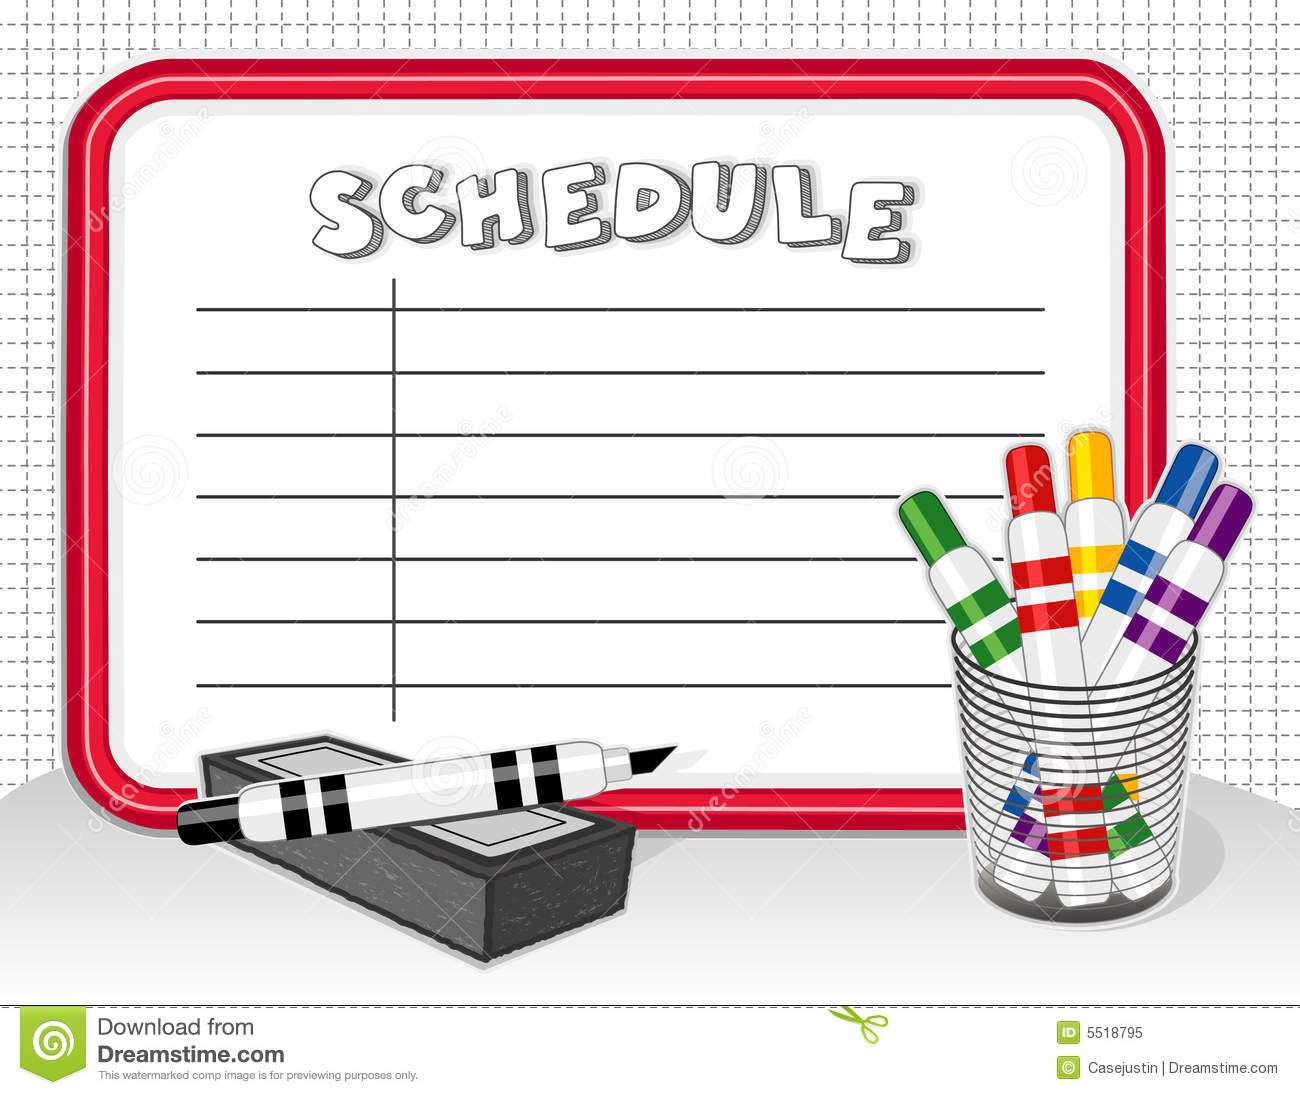 schedule board with markers